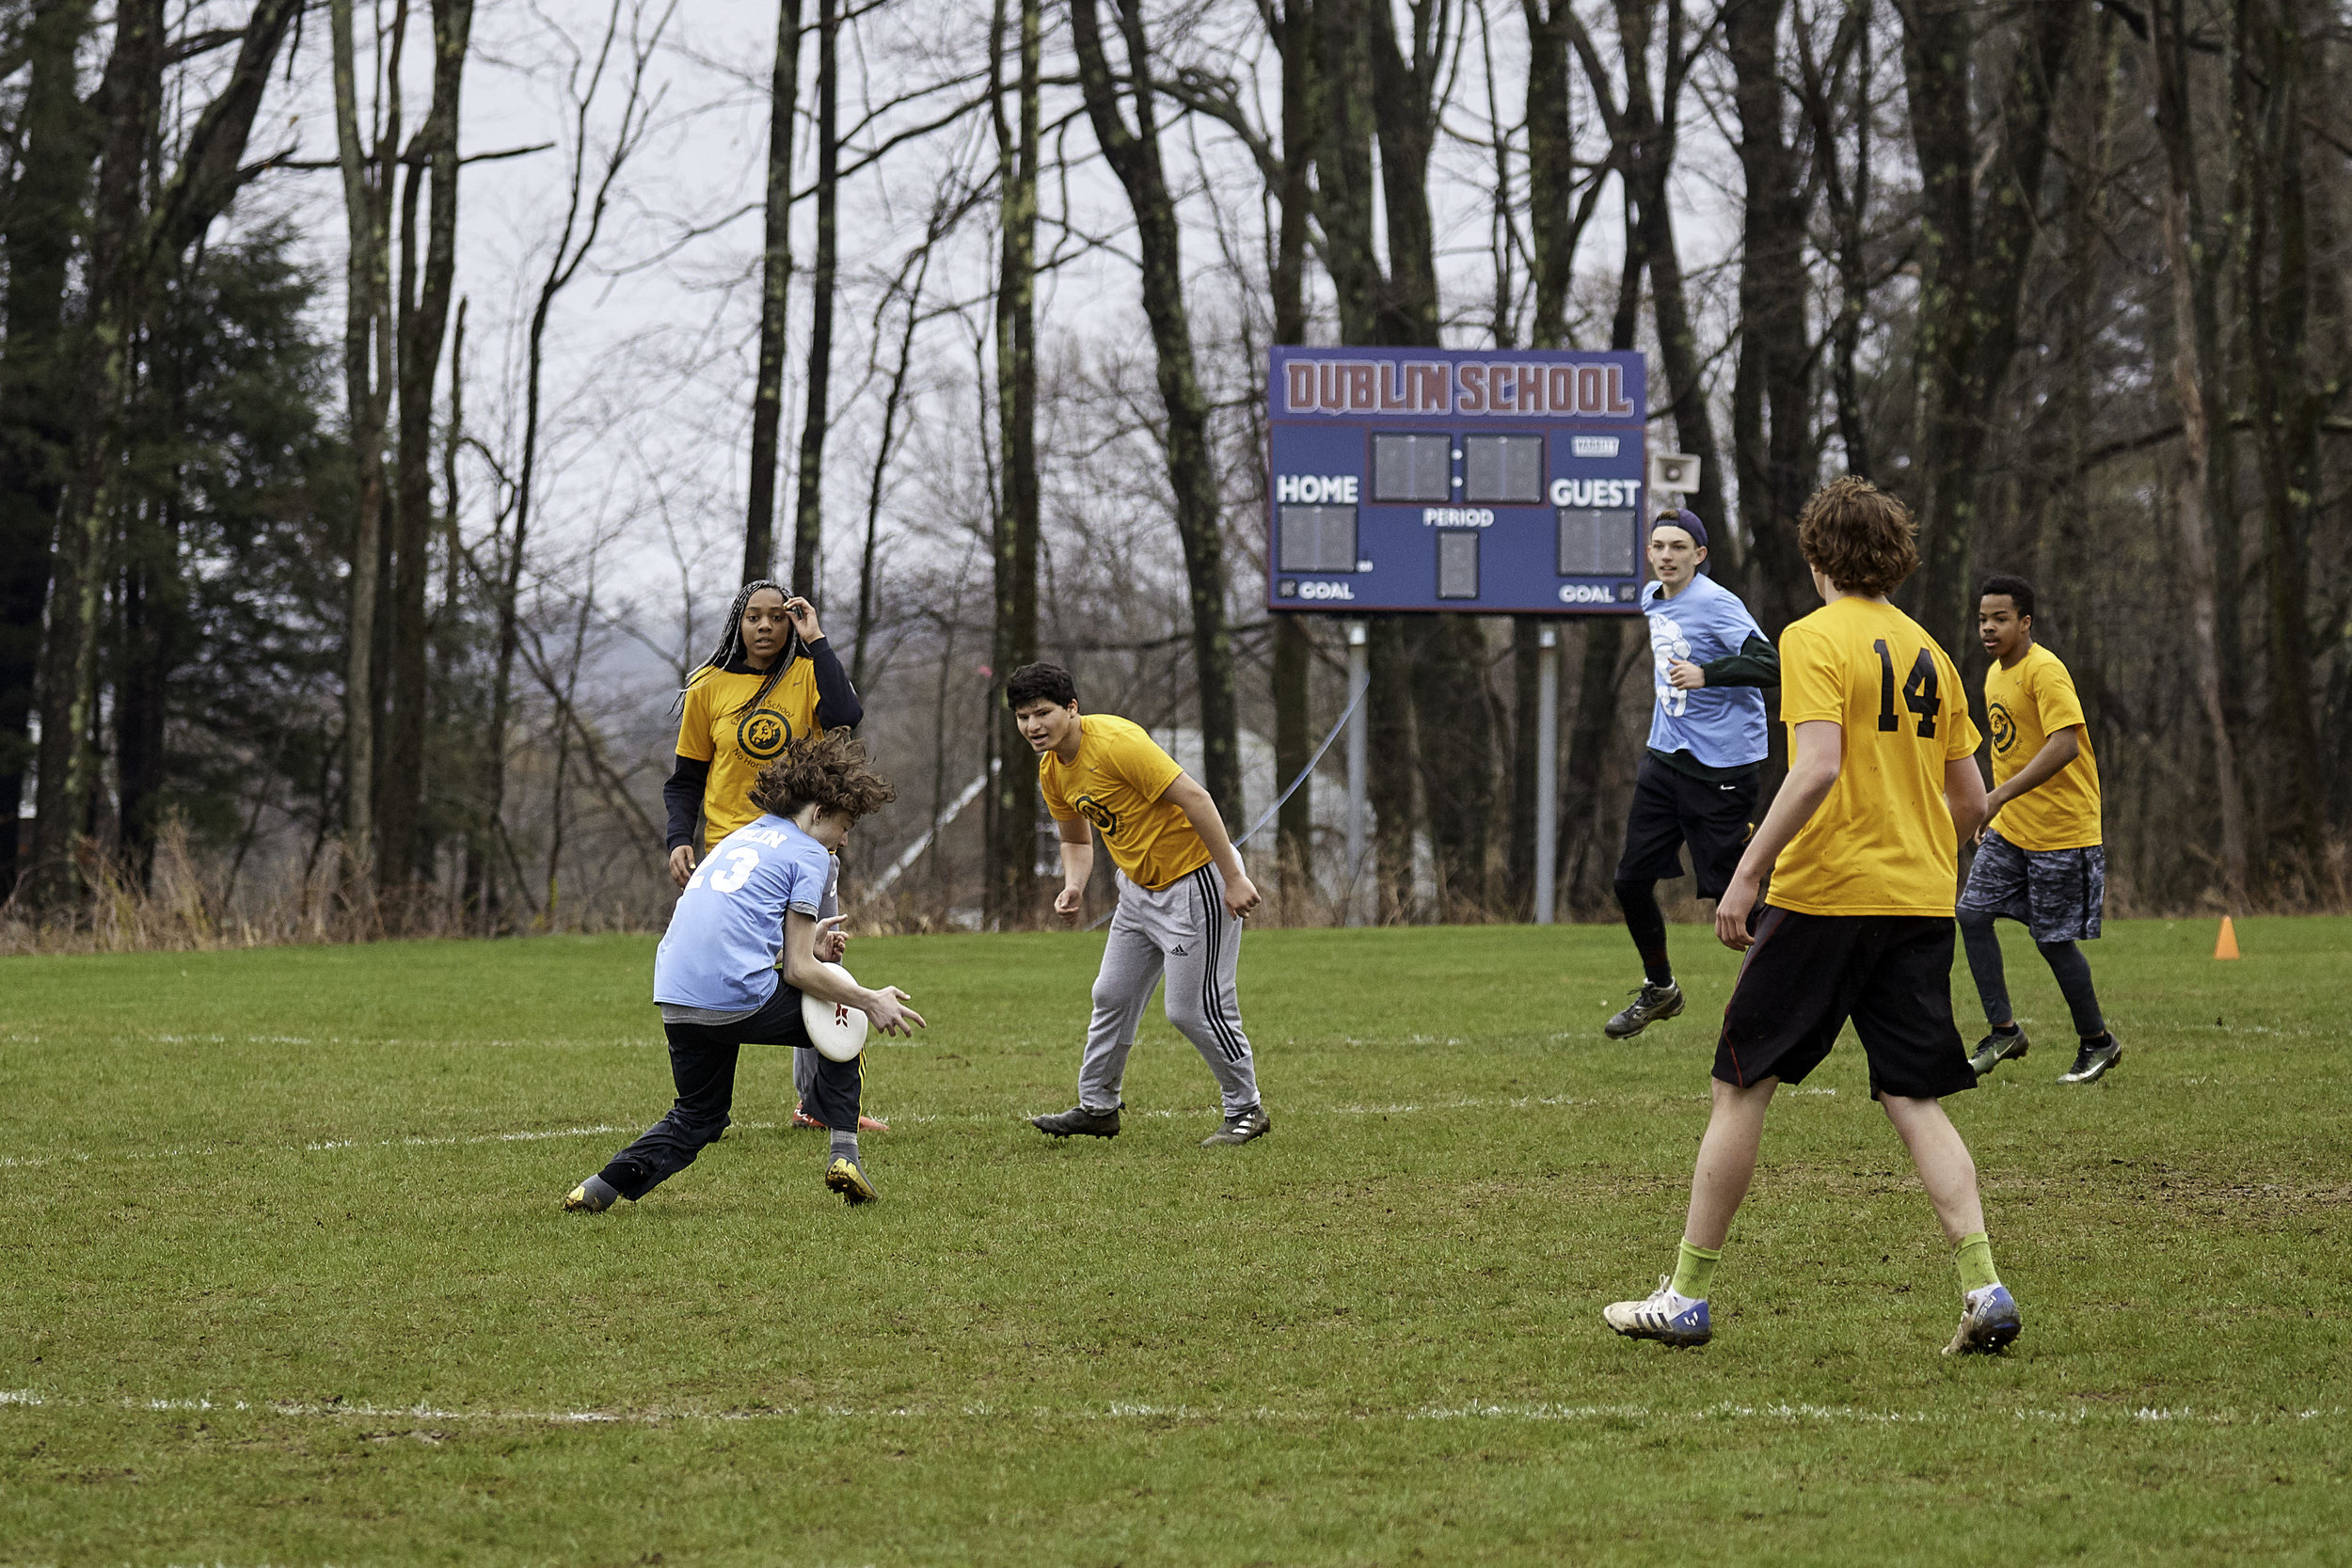 Ultimate Frisbee vs. Eagle Hill School - May 3, 2019 - 188558.jpg